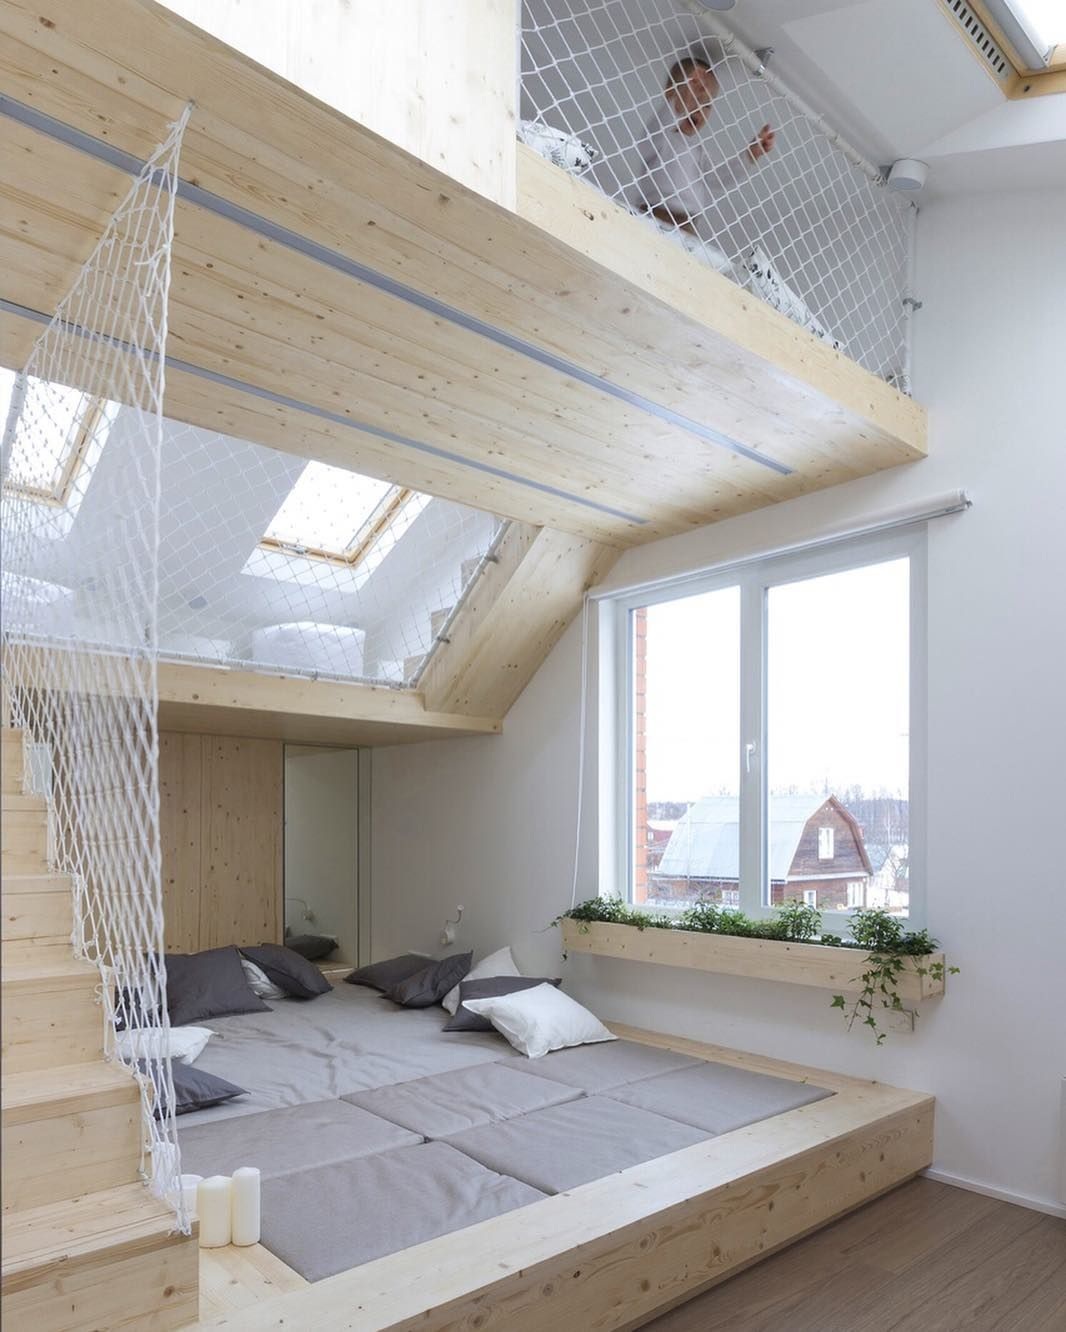 The Idea Behind The Design Of This Bedroom By Ruetemple Is